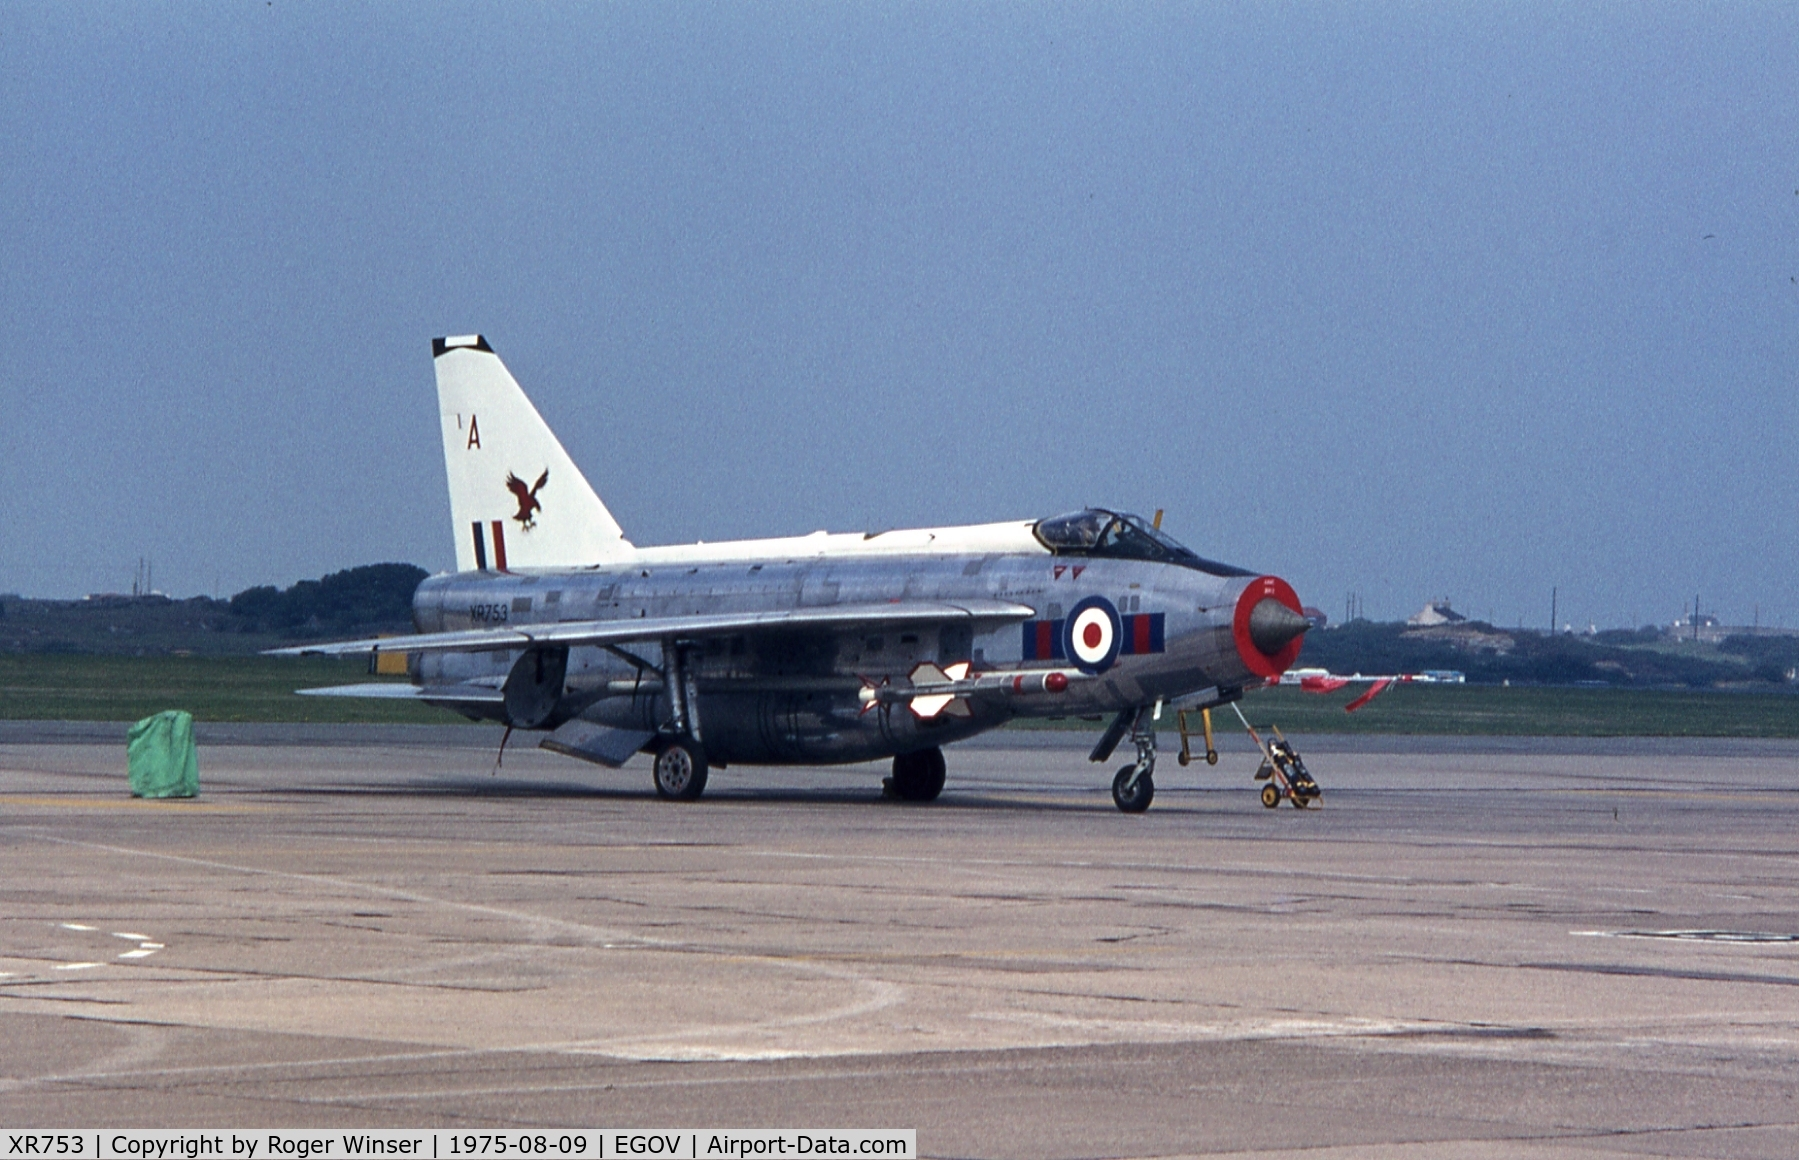 XR753, 1965 English Electric Lightning F.6 C/N 95218, Coded A of 23 Squadron RAF at the RAF Valley Airshow 1975.